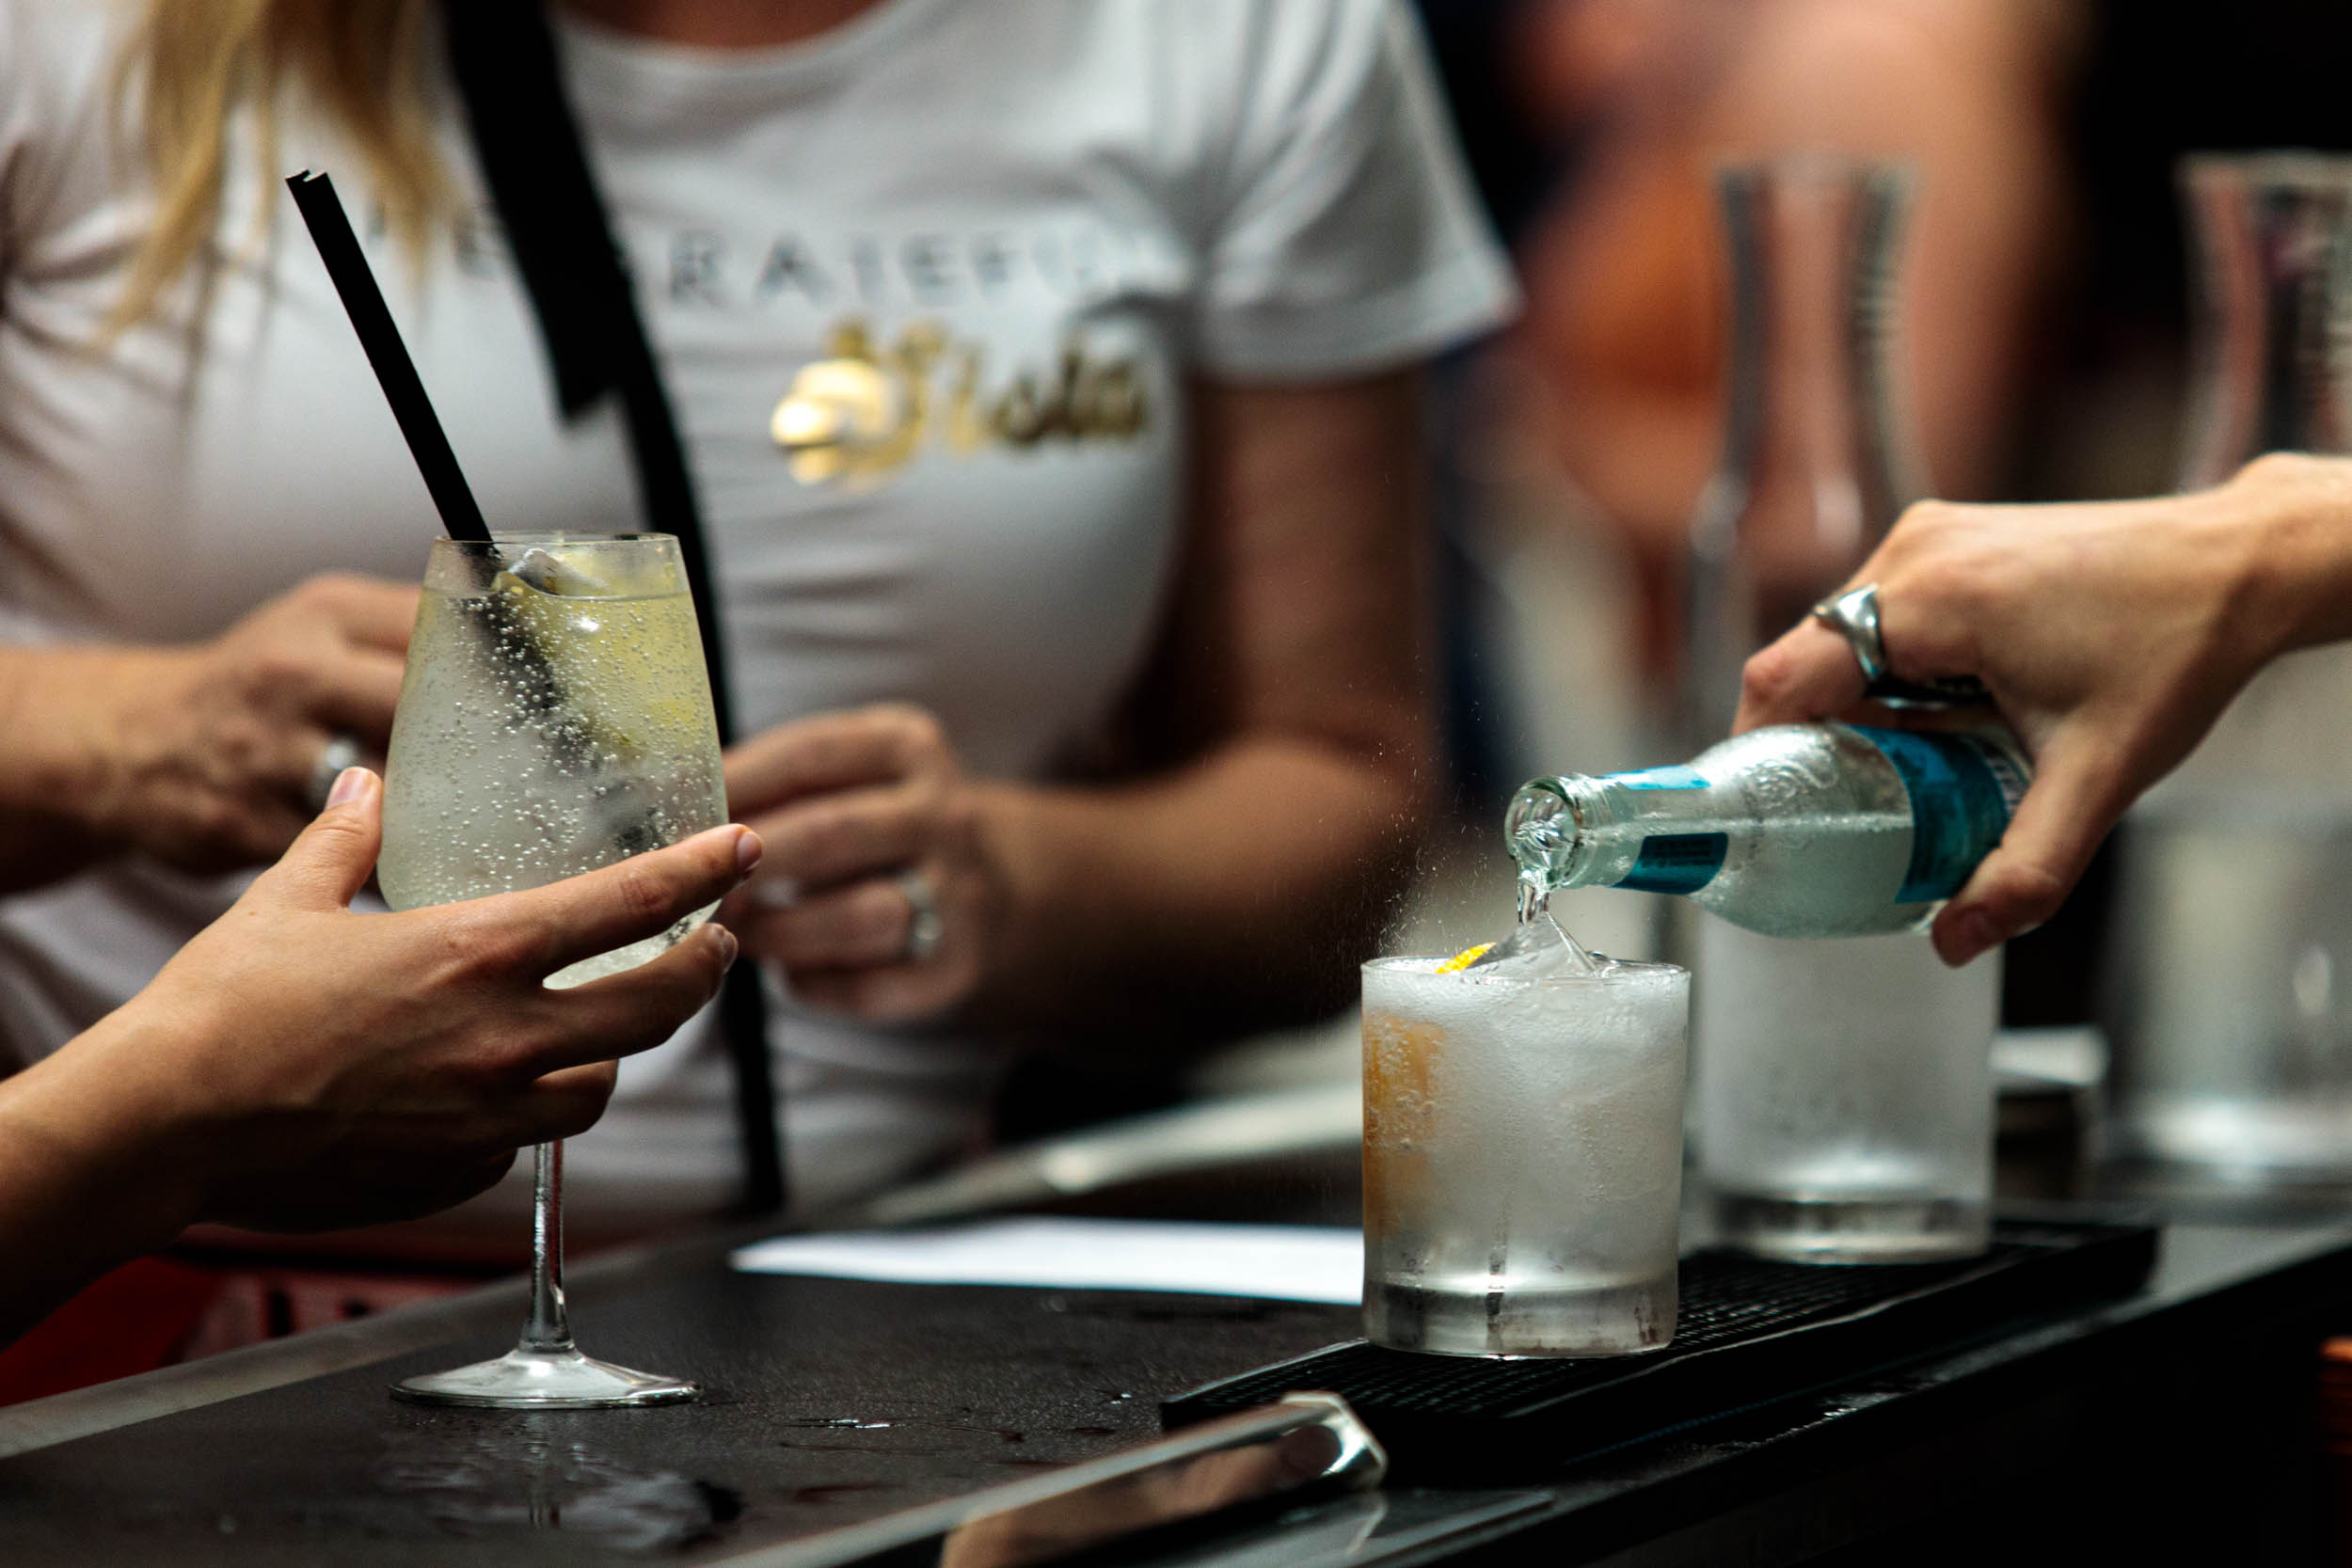 A gin and Tonic being poured at a bar, with bubbles popping as it reaches the top of the glass